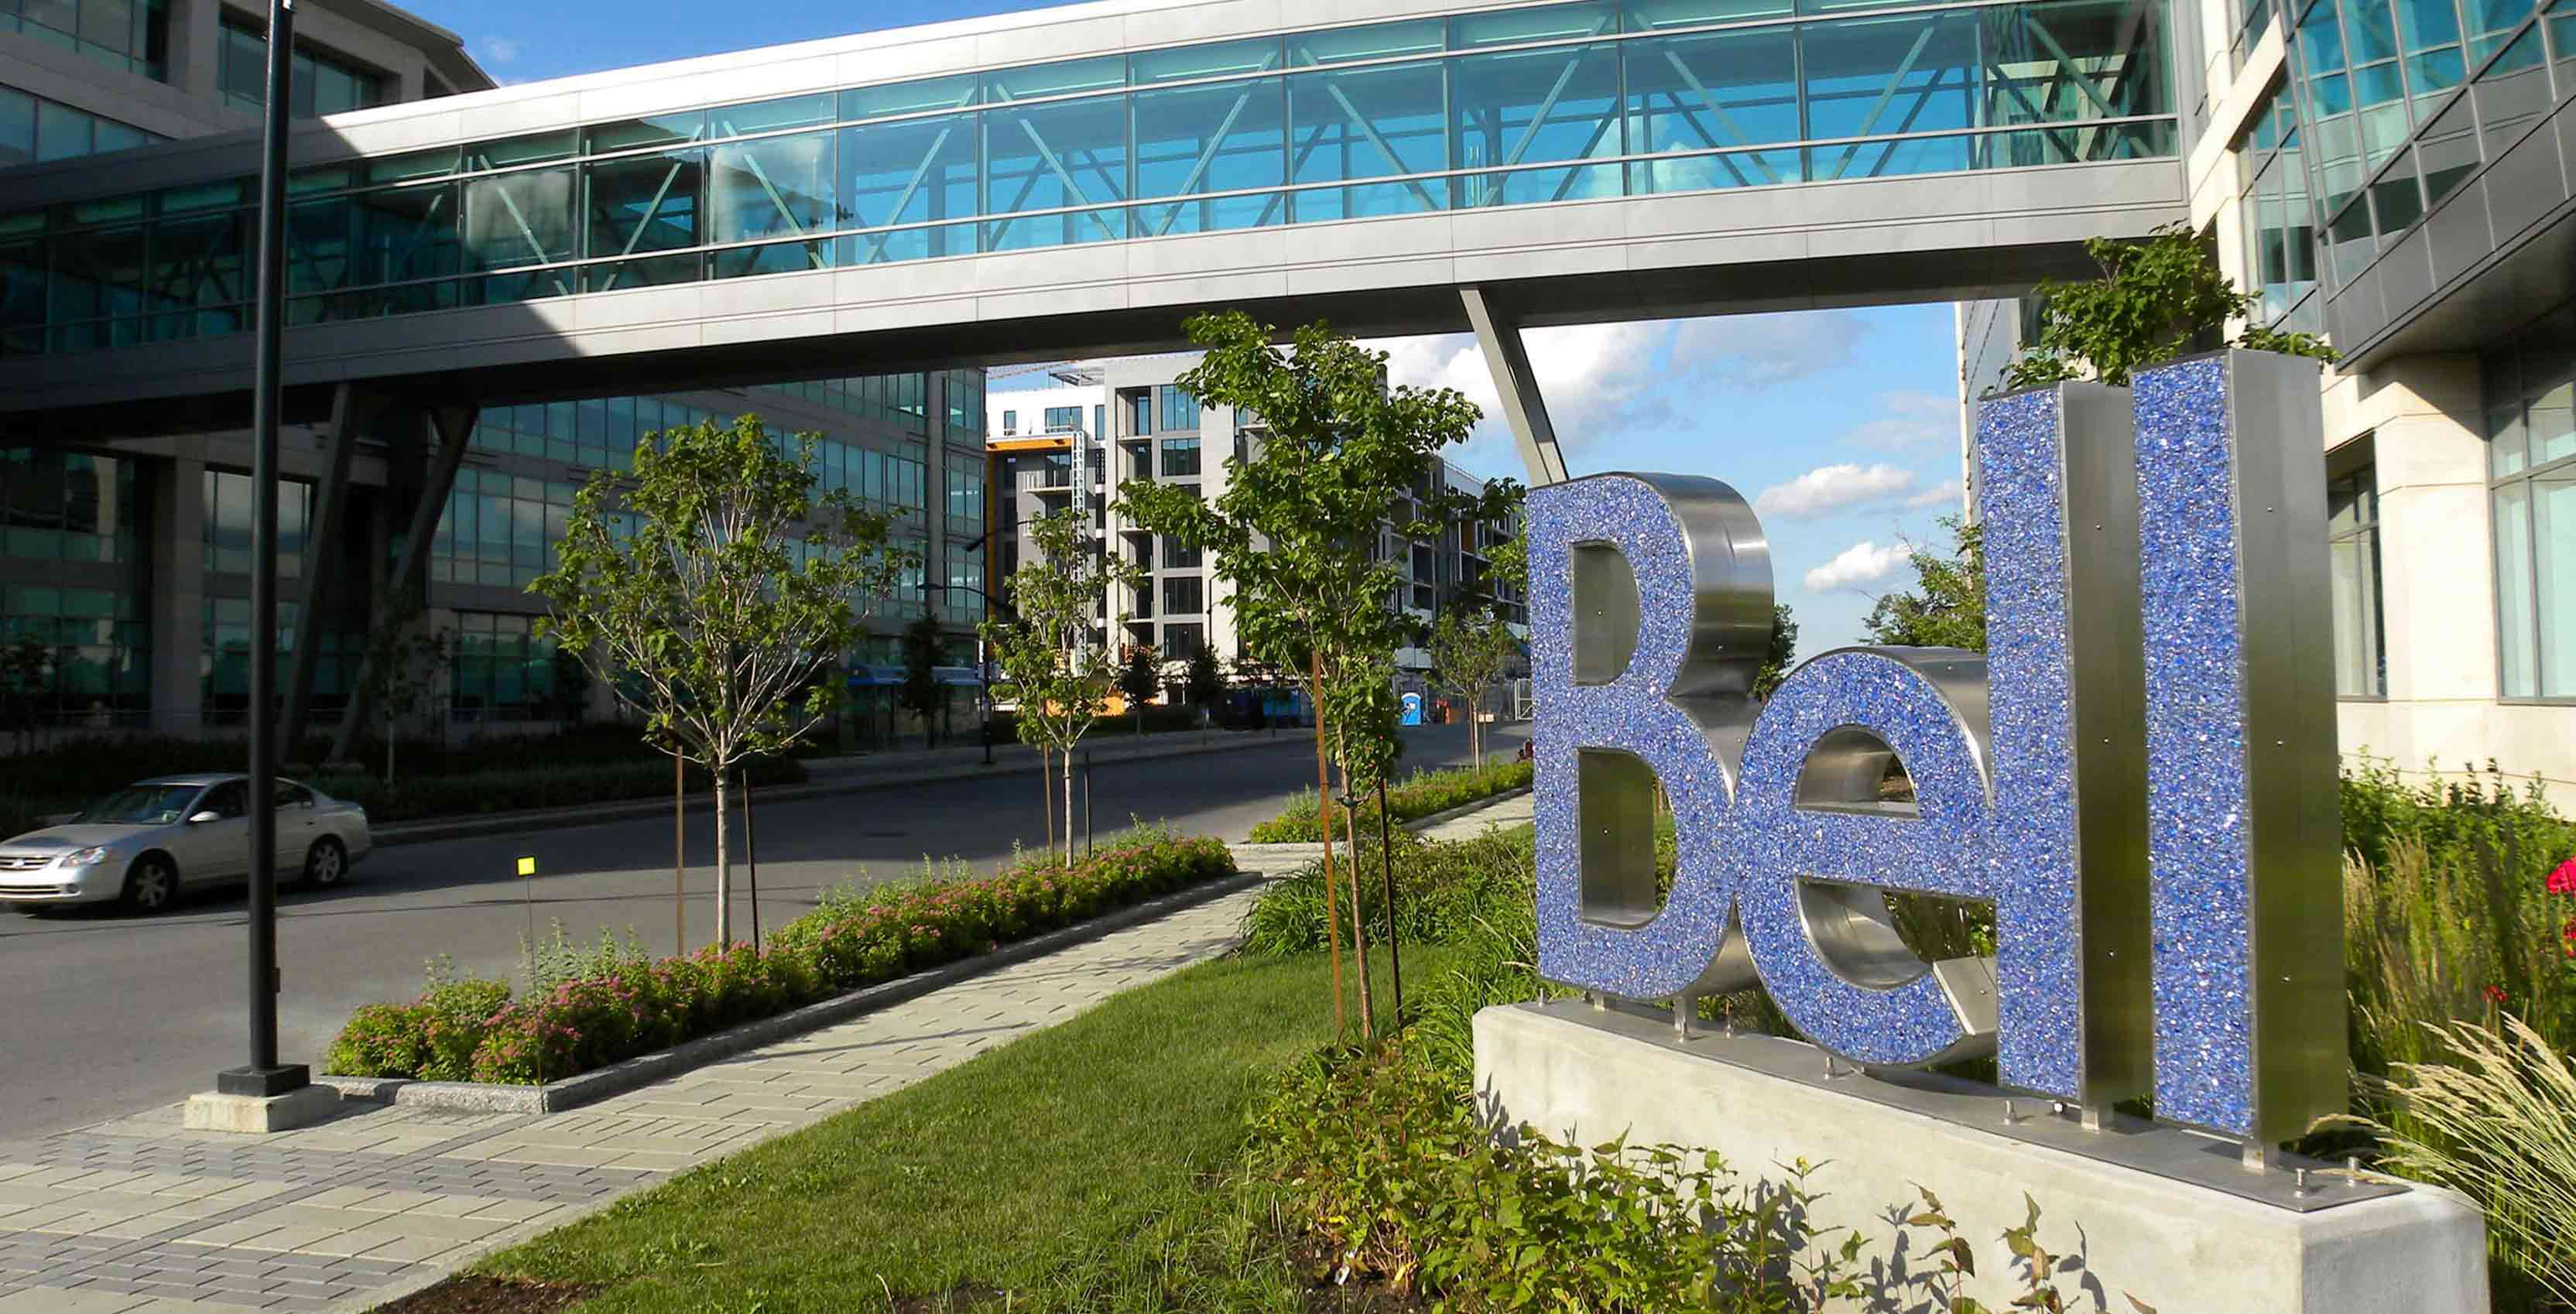 EPS for BCE Inc. (BCE) Expected At $0.81